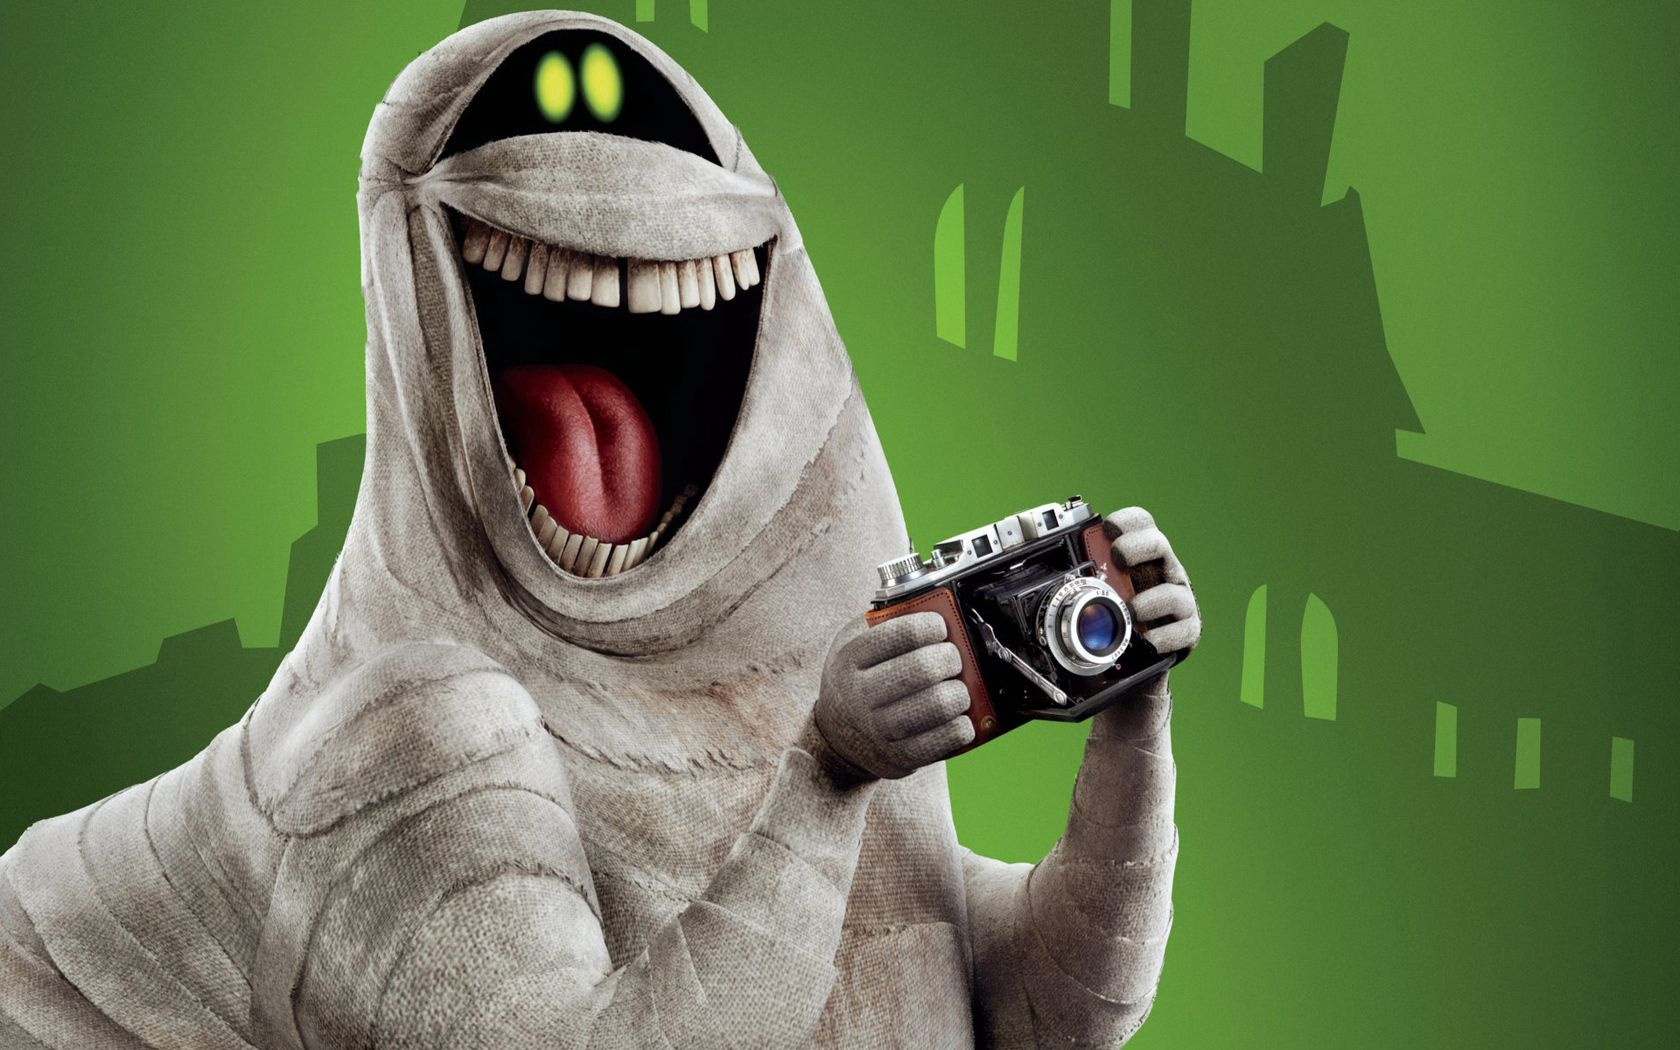 147739 download wallpaper Art, Smile, Camera, Monster, Laugh, Laughter screensavers and pictures for free